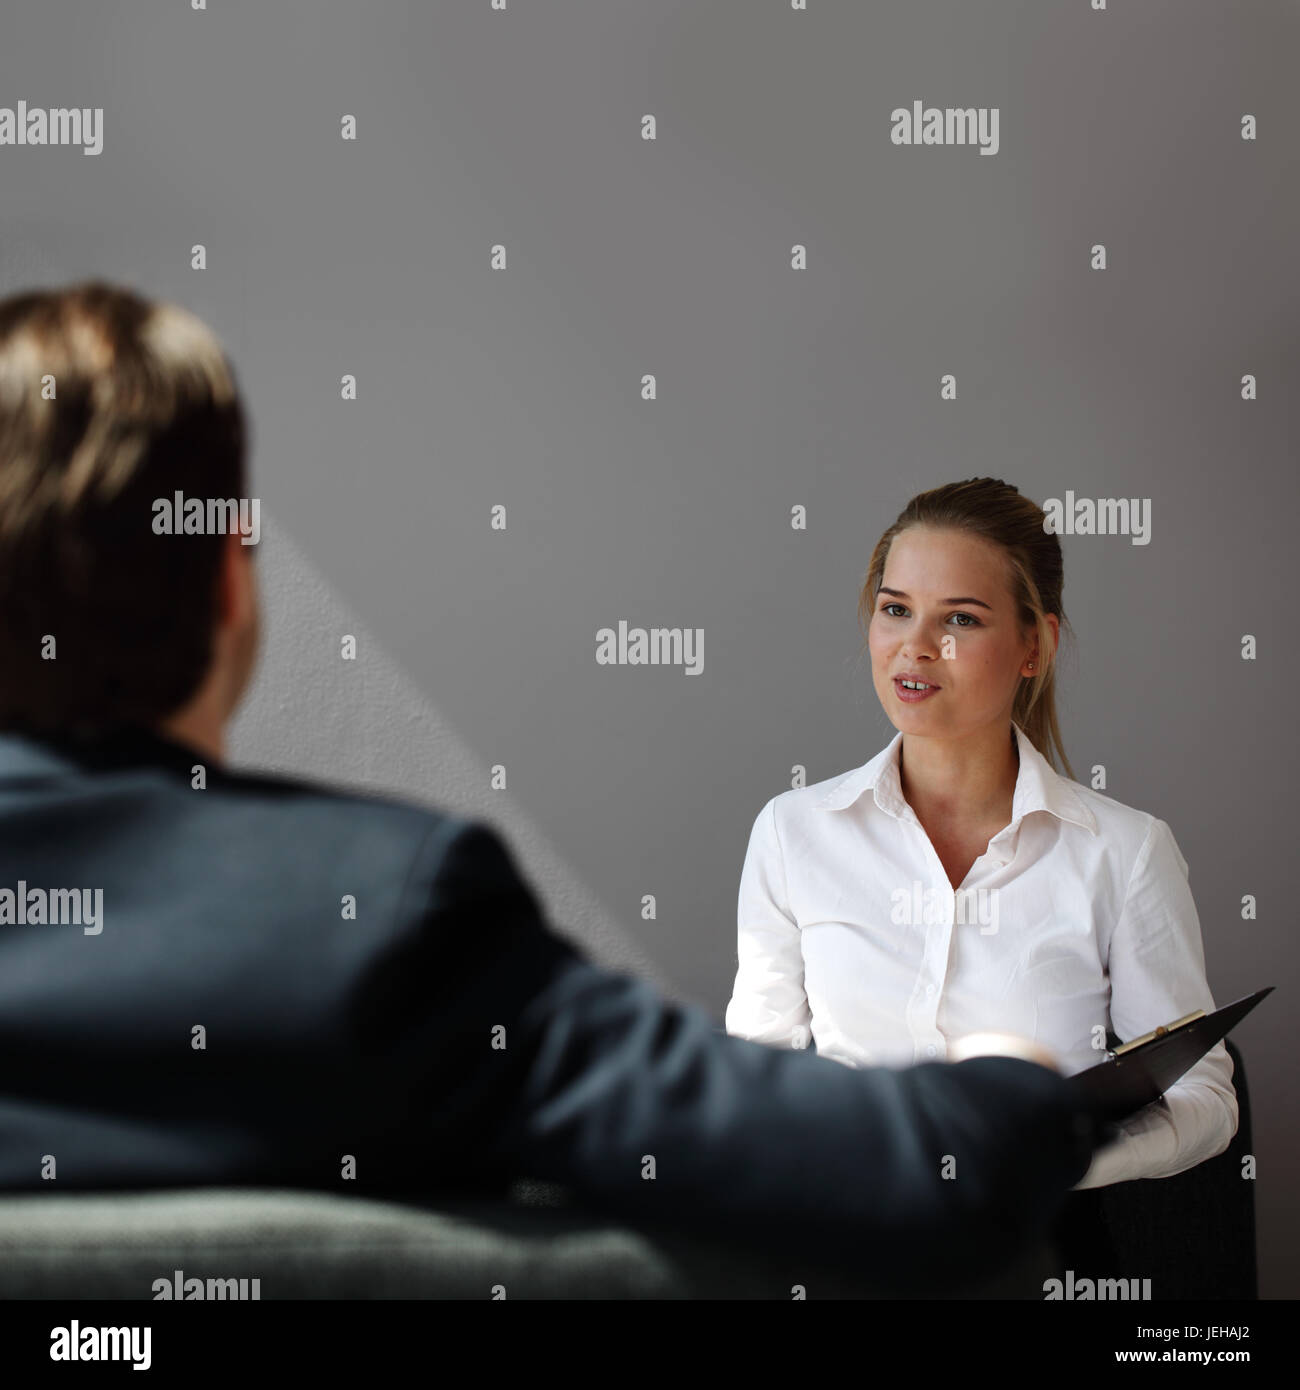 Job businss interview - businessman listen to candidate answers - Stock Image